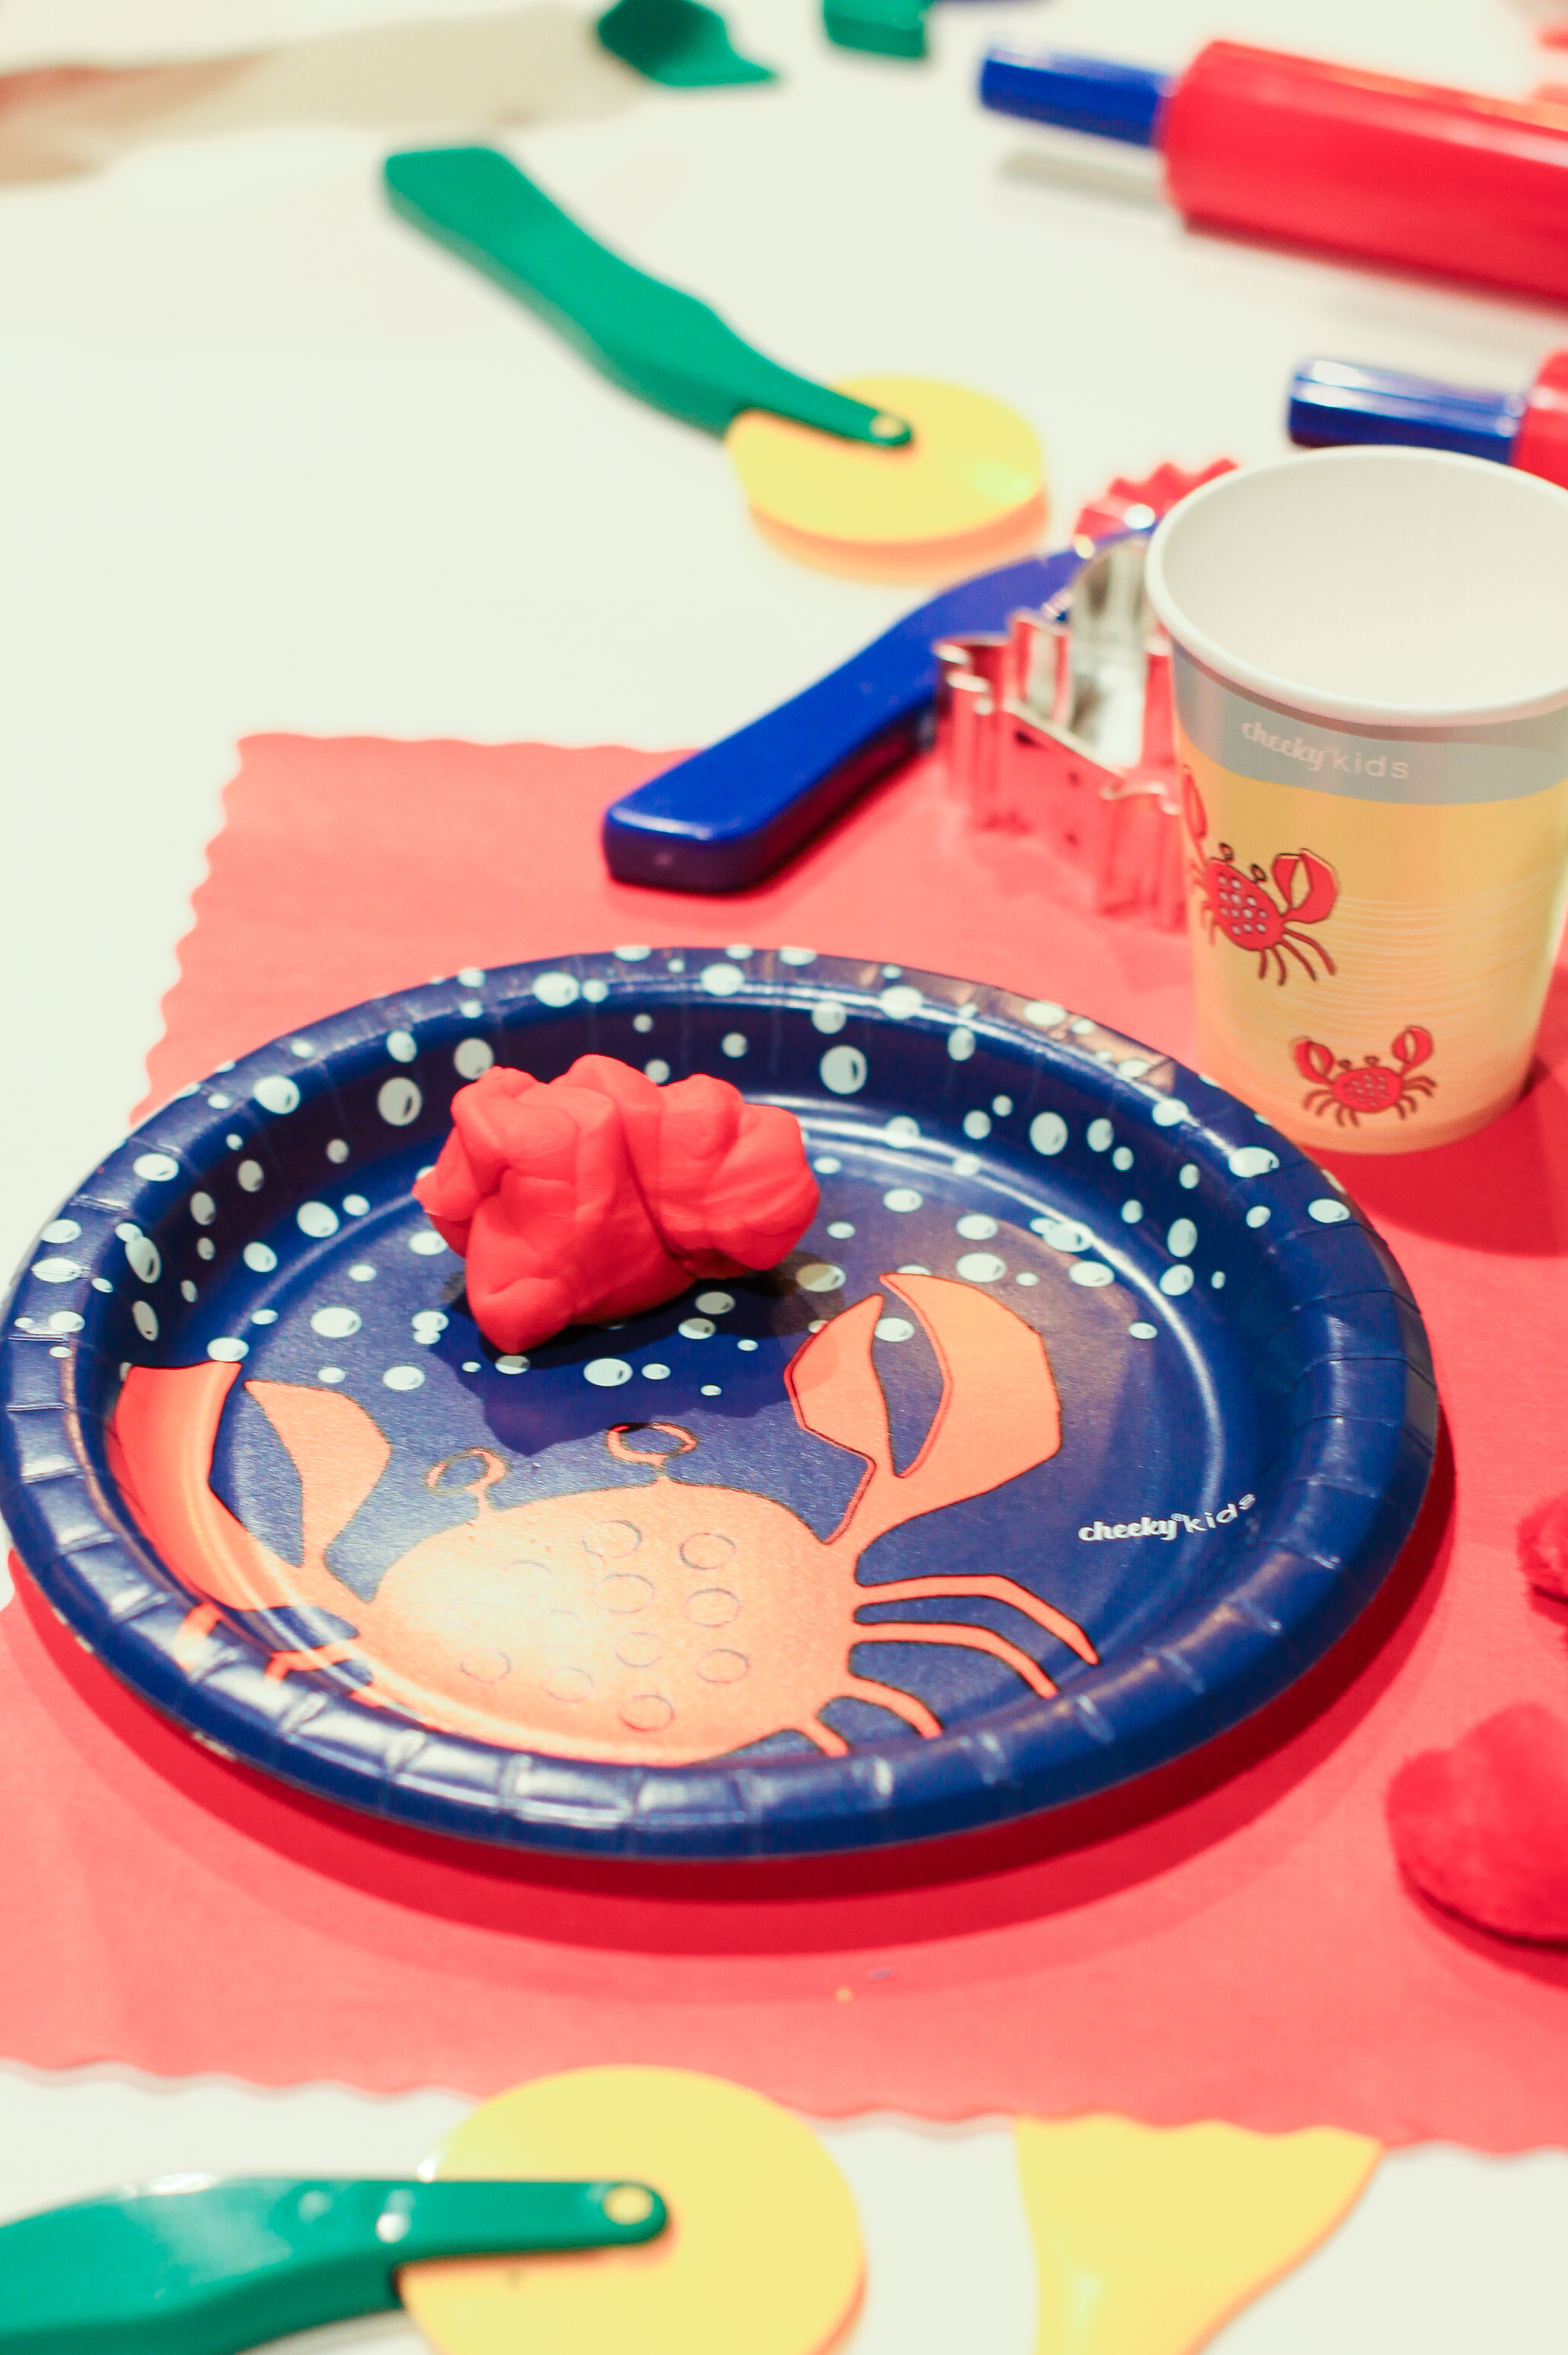 Cheeky Kids has an adorable collection of kid friendly tablewear, and gives meals to feed empty tummies nationwide.